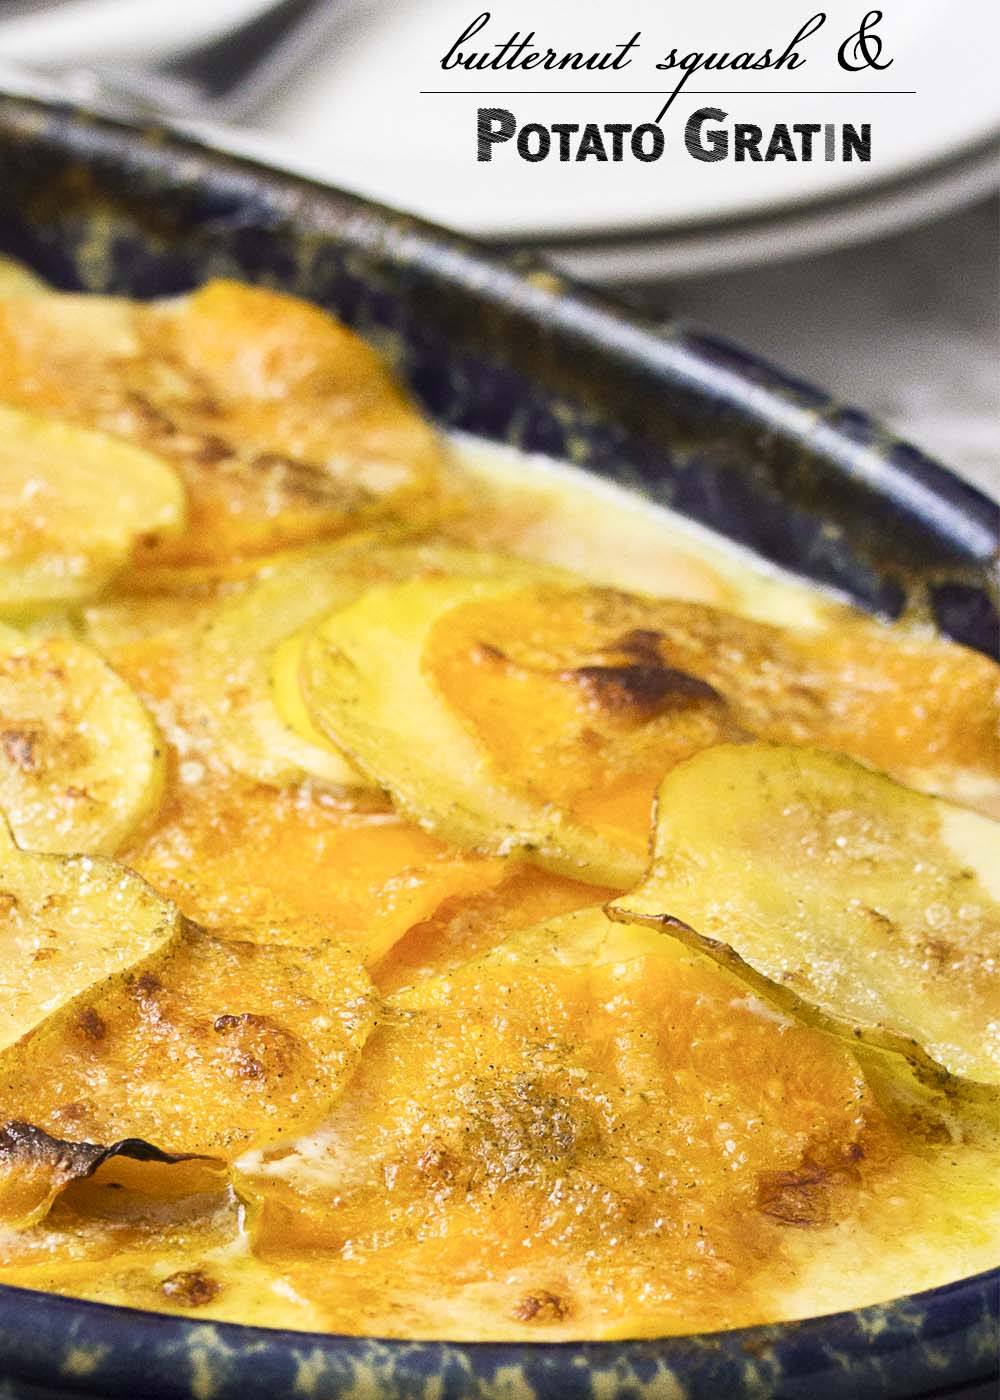 Thinly sliced winter squash and yellow potatoes are layered with brie, then baked until meltingly tender in this winter comfort food recipe for butternut squash potato gratin.   justalittlebitofbacon.com